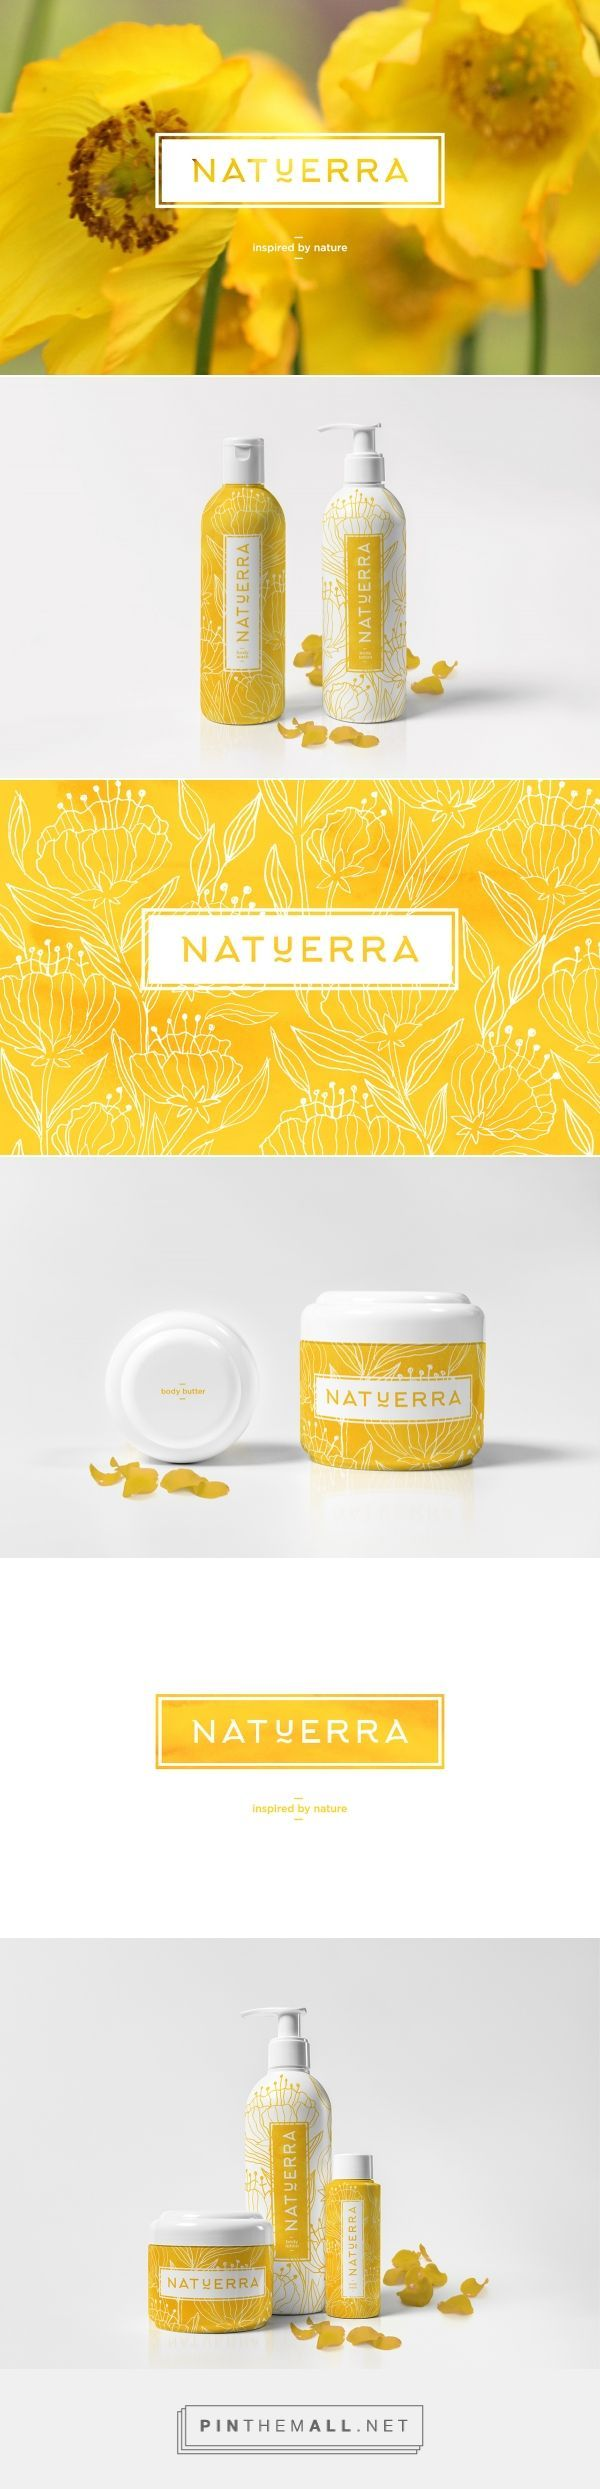 Natuerra Natural Cosmetic Packaging by Zhishi | Fivestar Branding Agency – Design and Branding Agency & Curated Inspiration Gallery